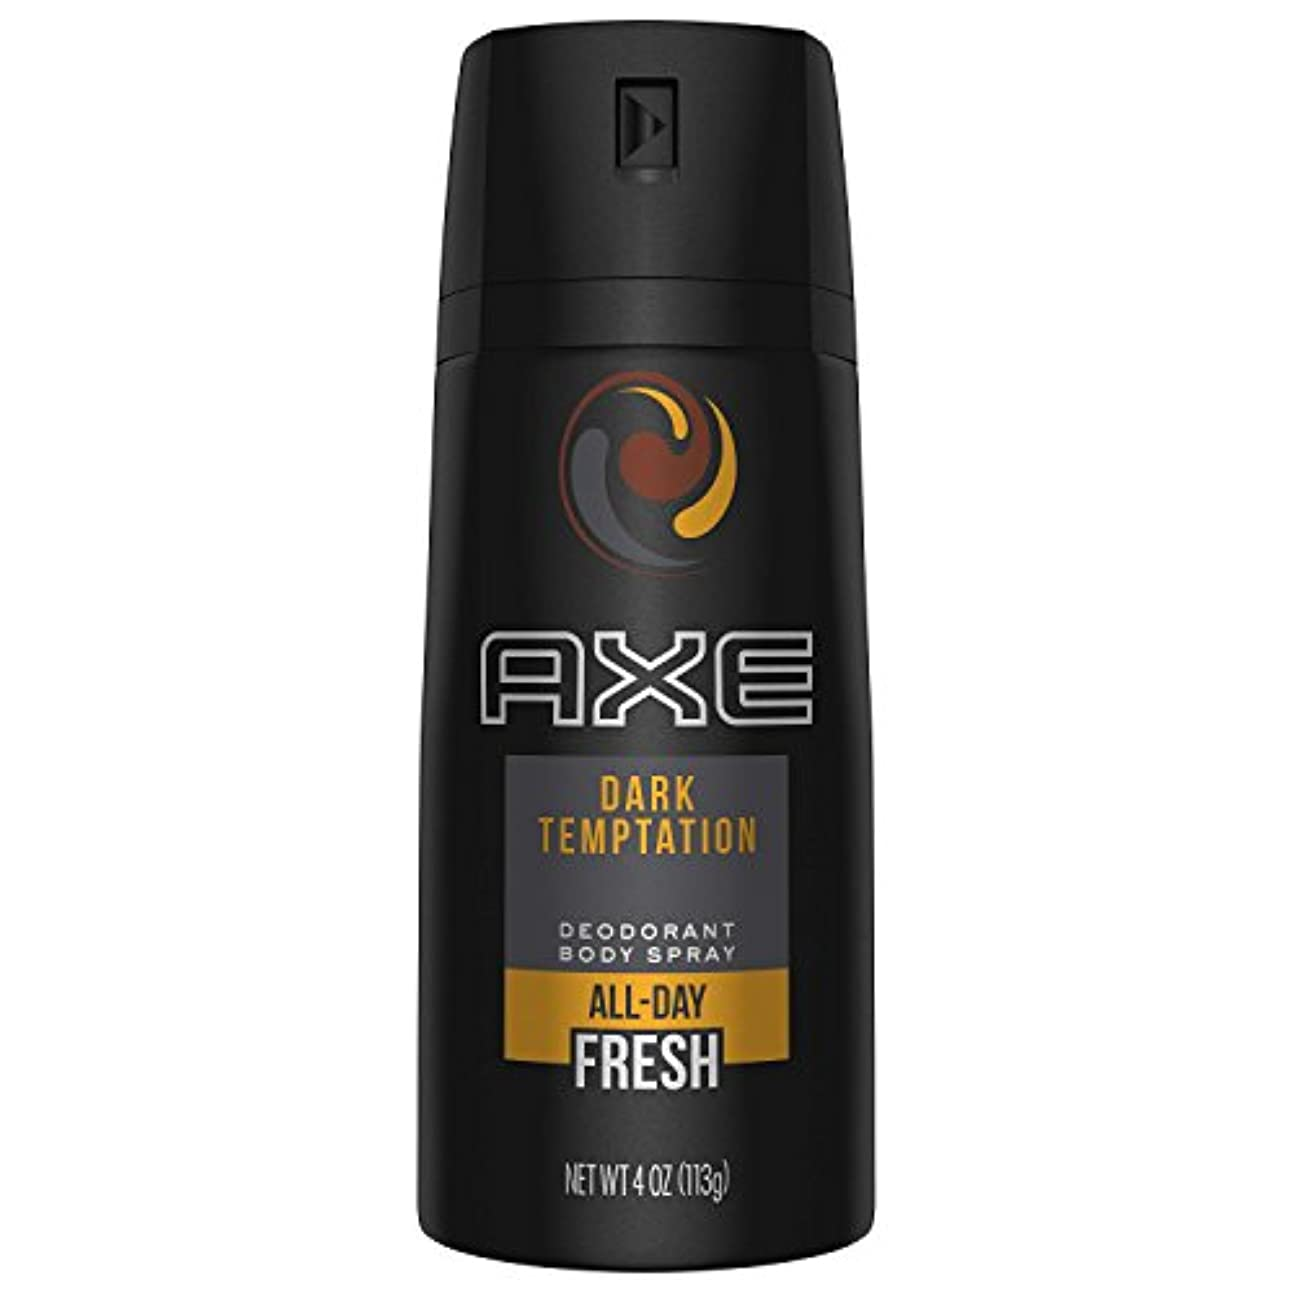 AXE Dark Temptation Deodorant Body Spray 120 ml Deodorant Spray Men (並行輸入品)